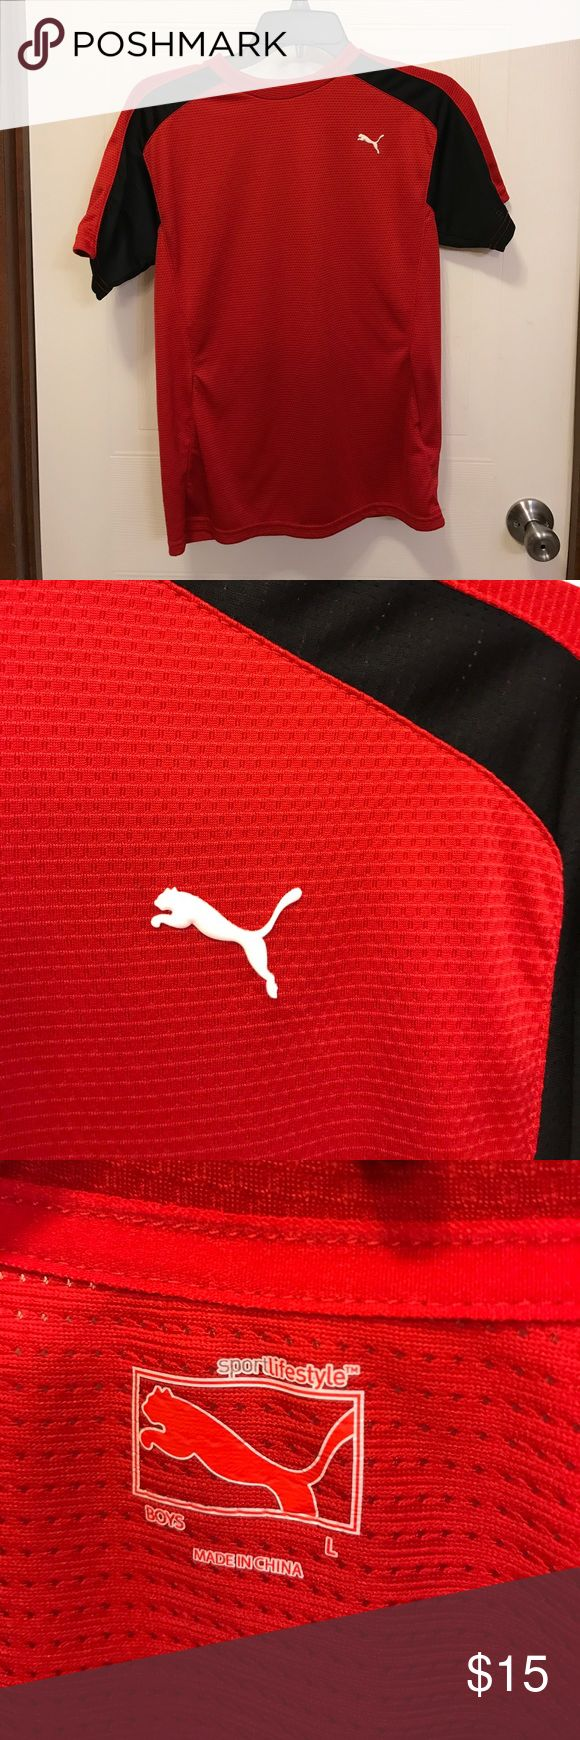 ⭐️Boys Puma Shirt Worn once. Excellent condition. Breathable material Puma Shirts & Tops